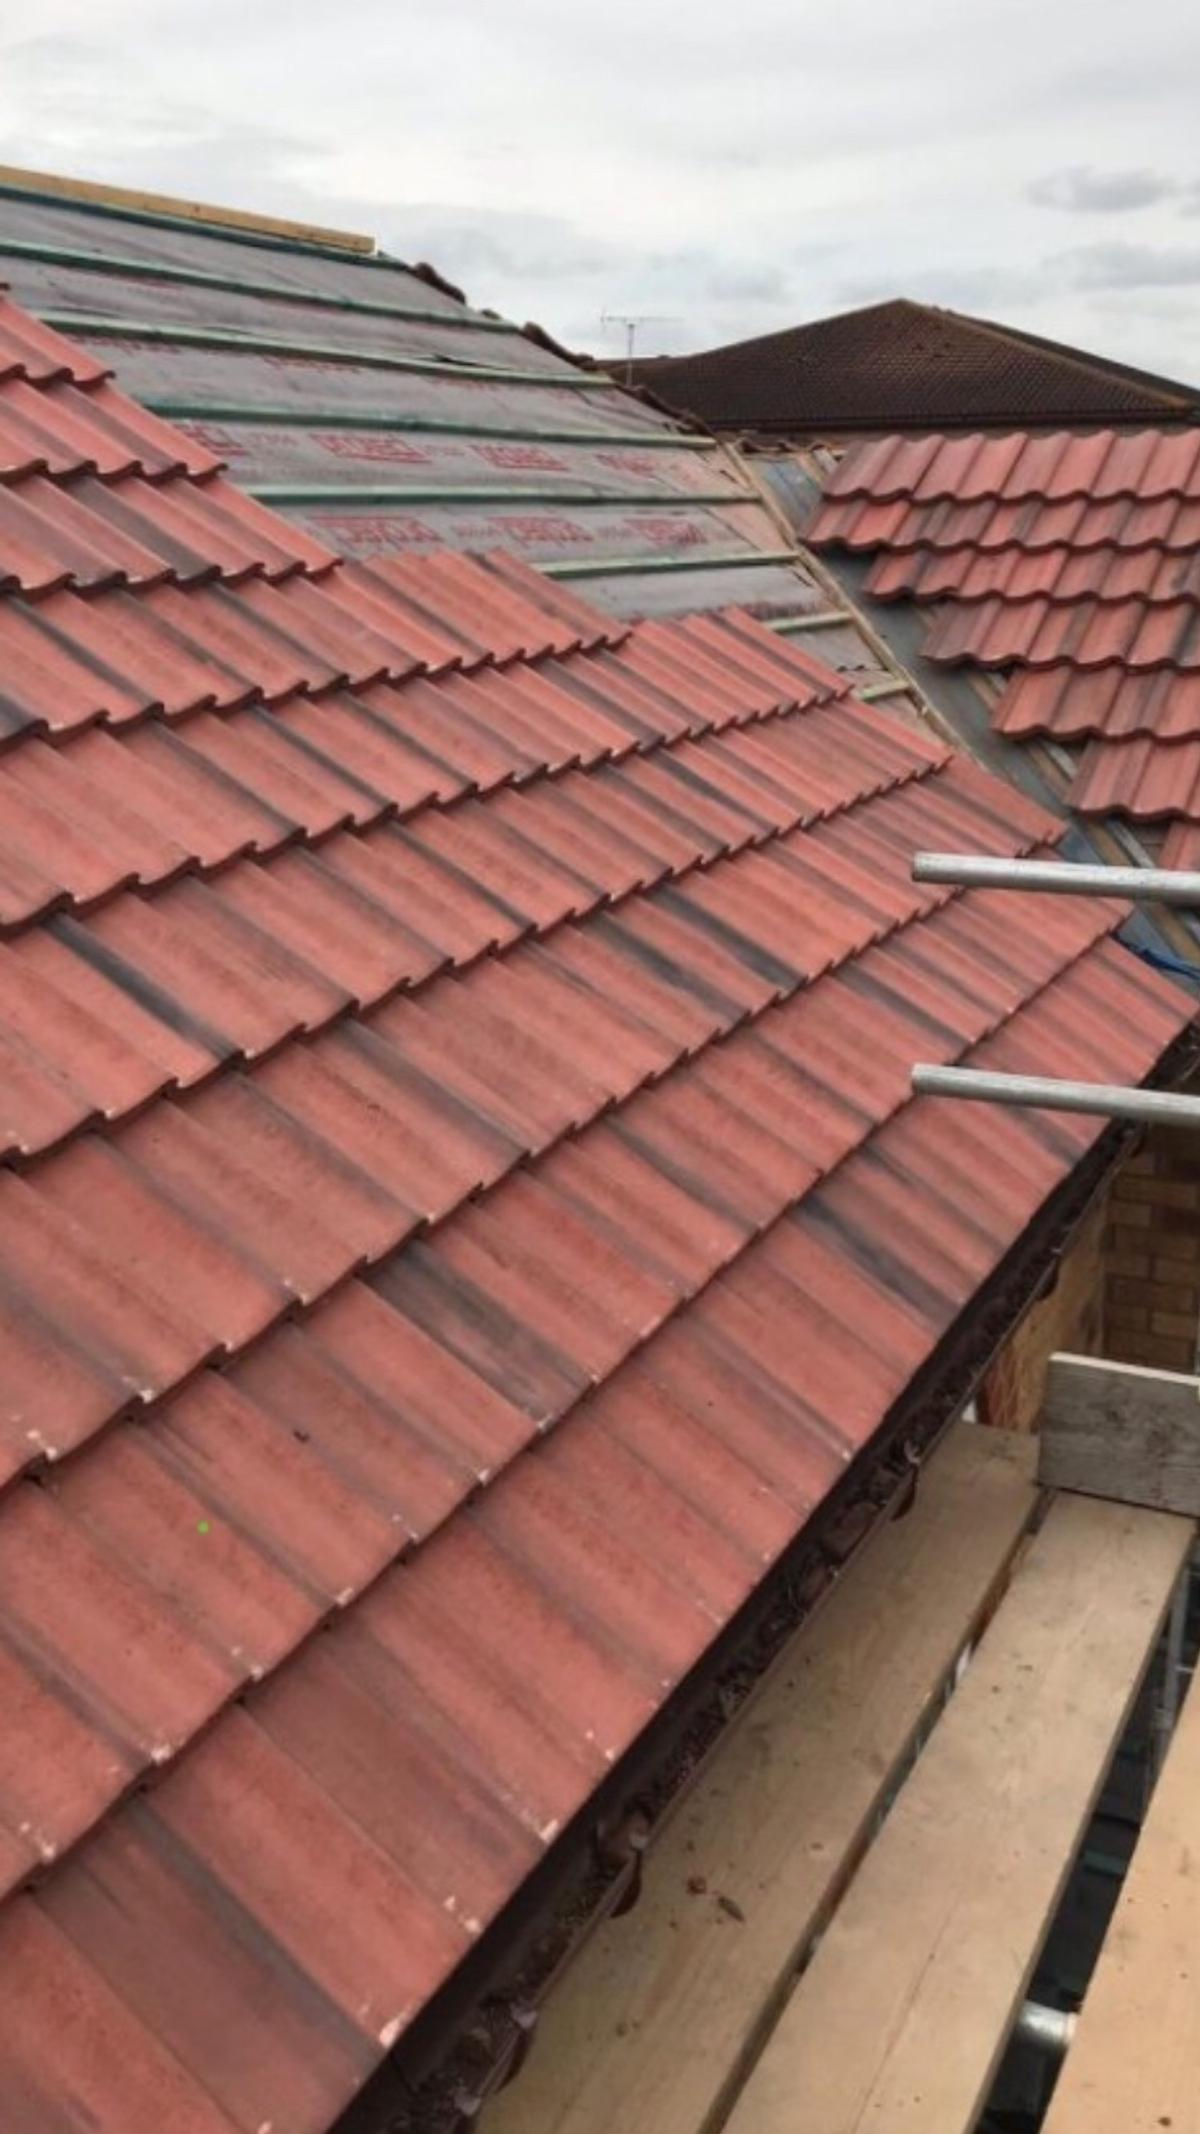 All aspects of roofing and upve work trust a trader approved call 08001910759